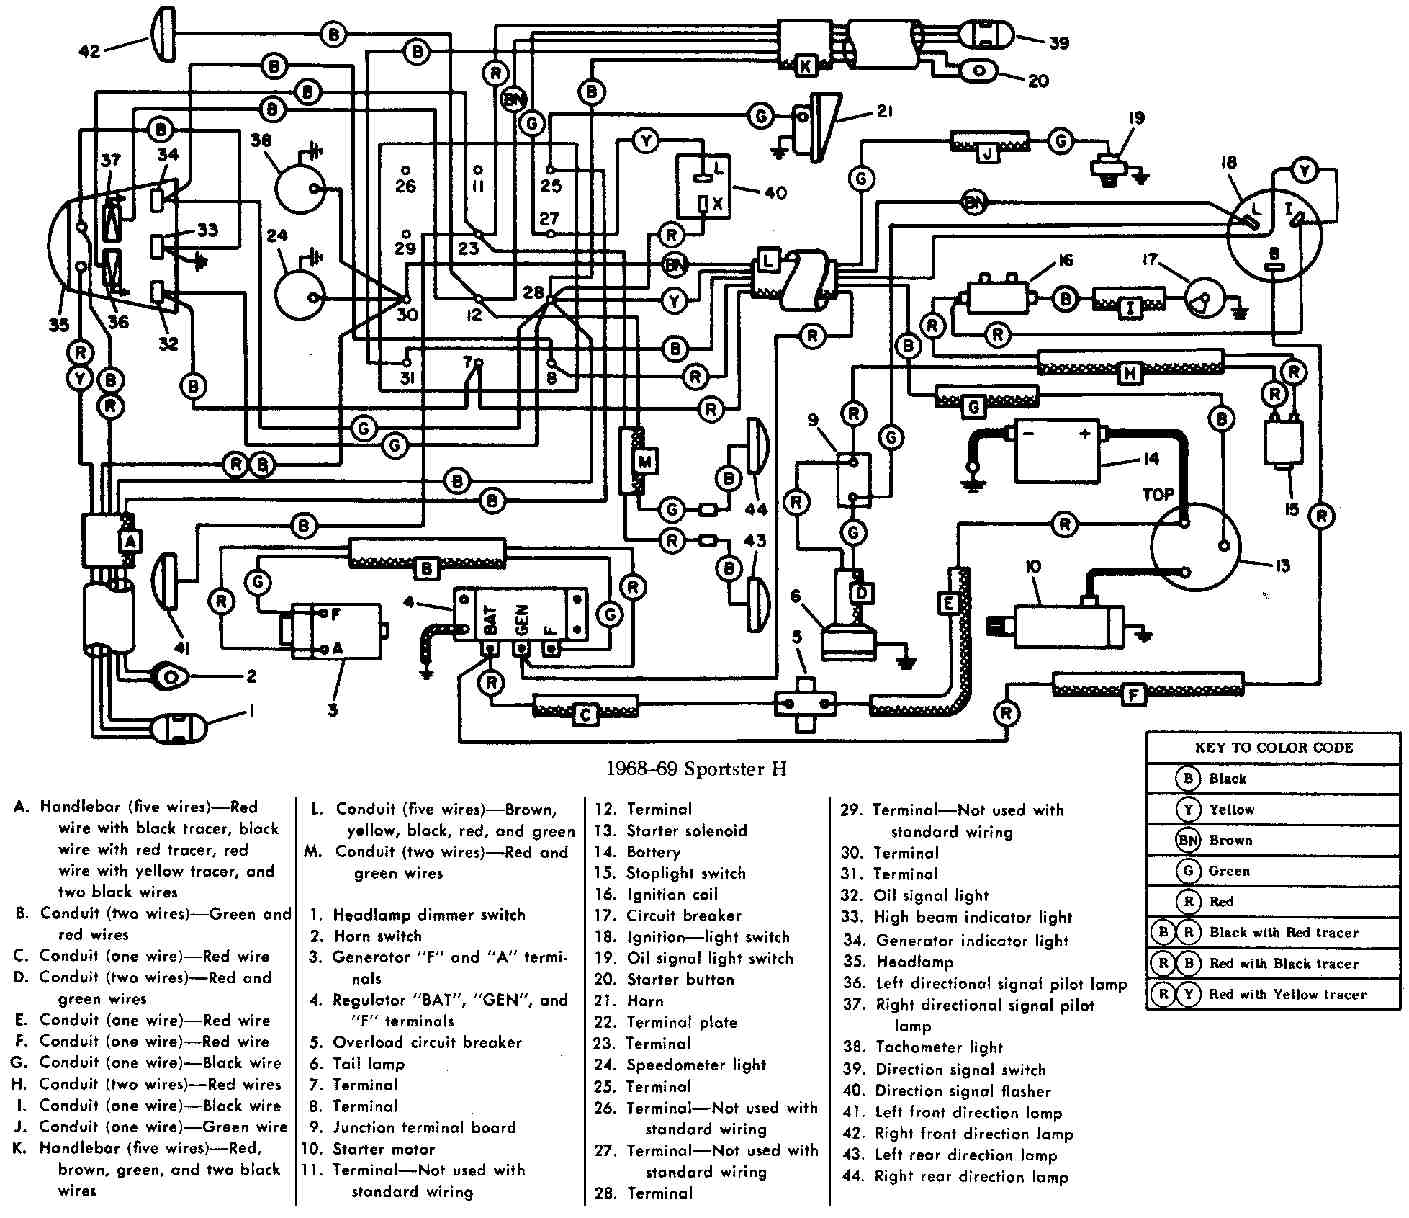 1966 colorized mustang wiring diagrams architecture building plan, Wiring diagram